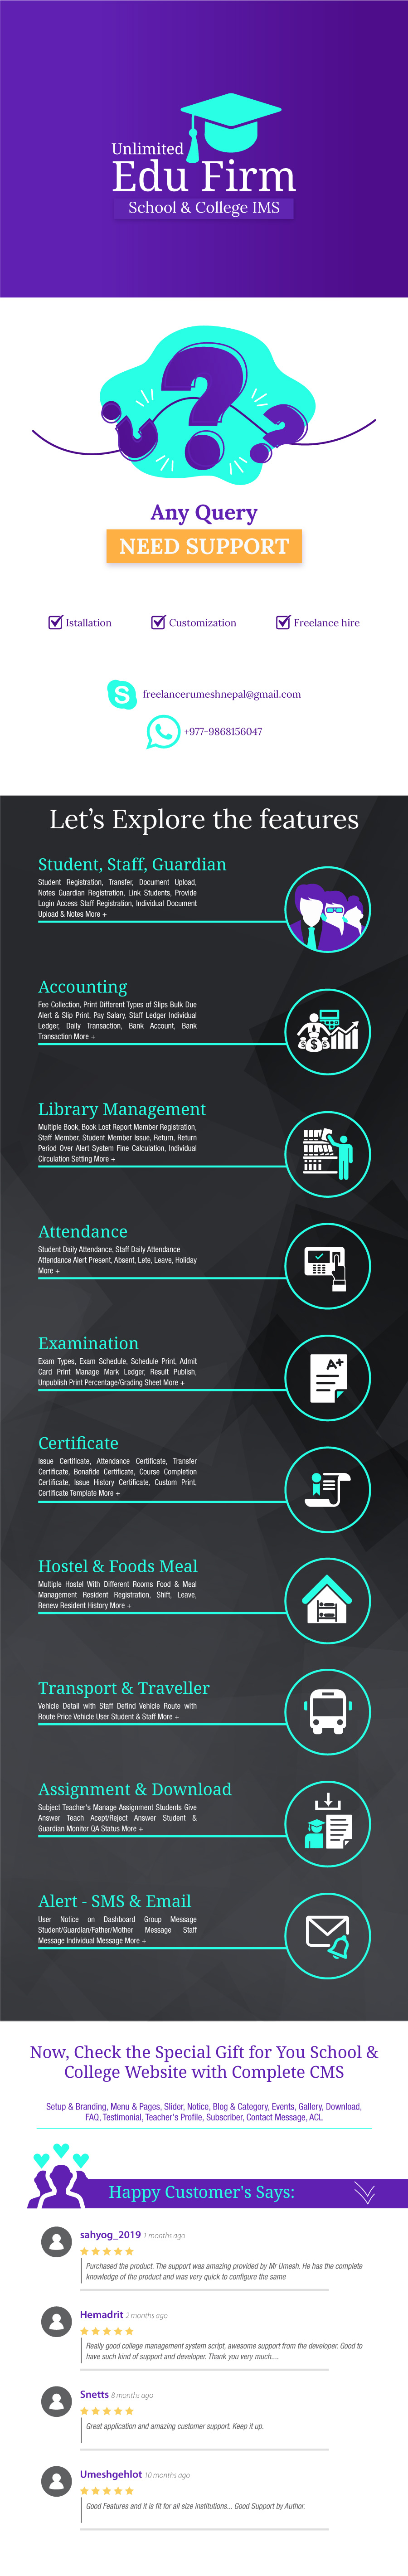 Unlimited Edu Firm School & College Information Management System - 1